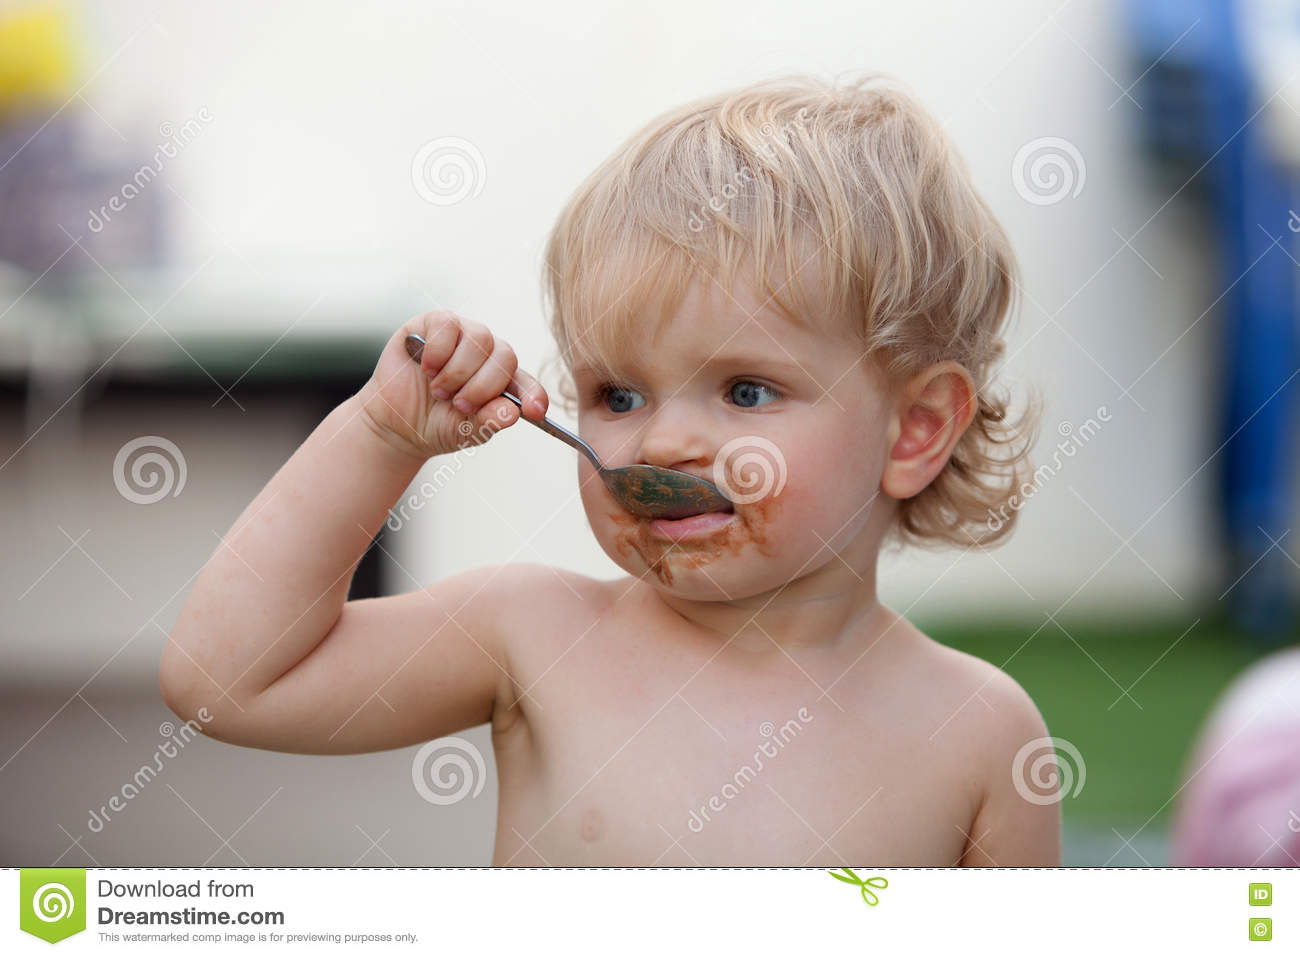 Funny blond baby eating chocolate